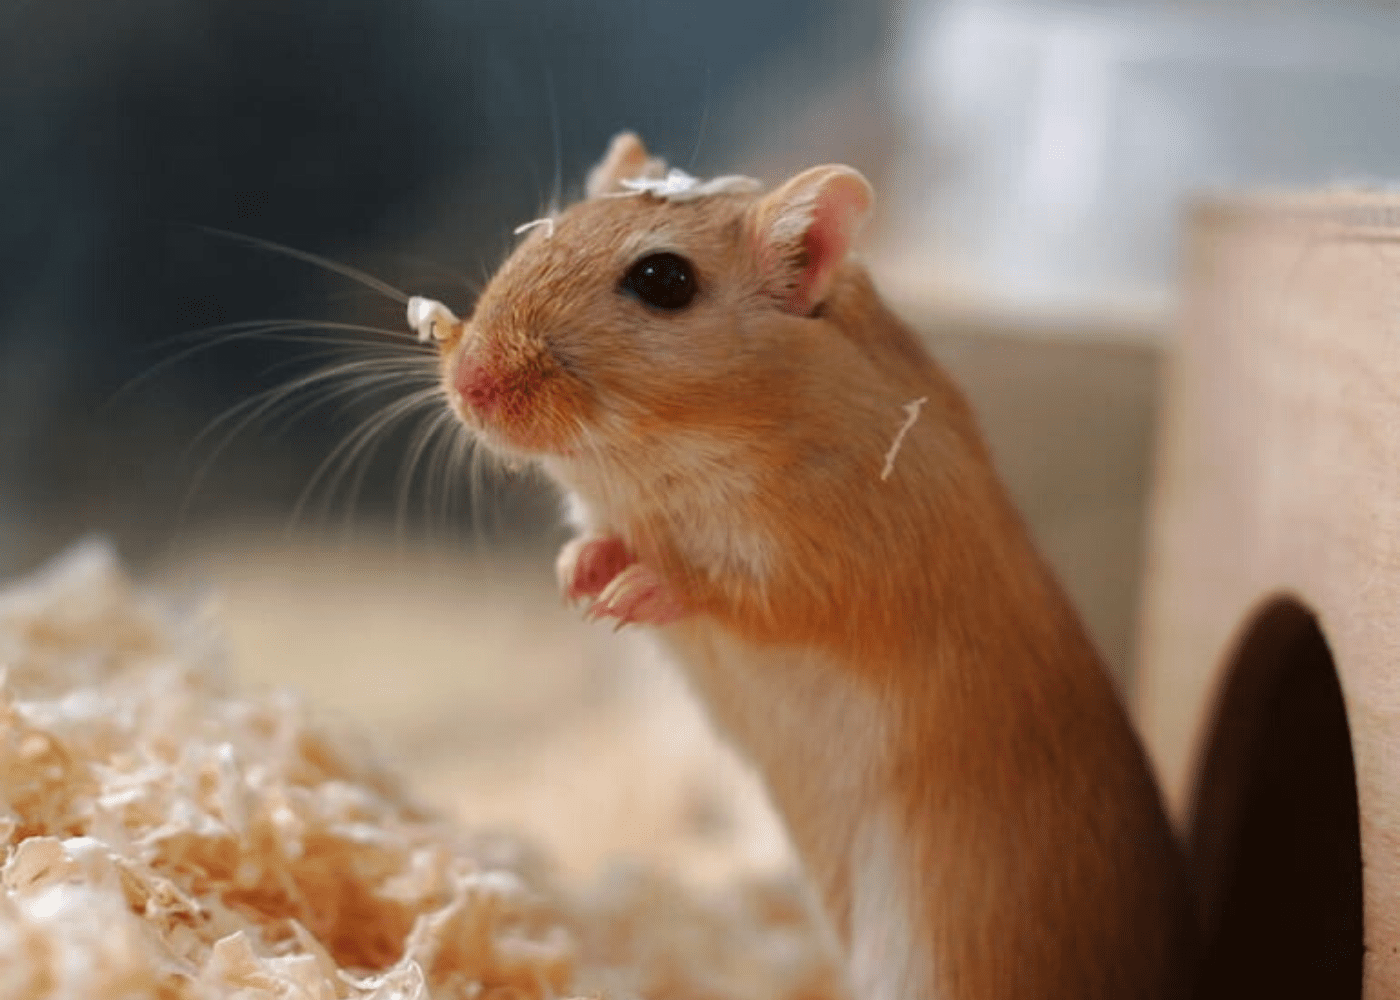 Small pets for kids in Singapore: Mice